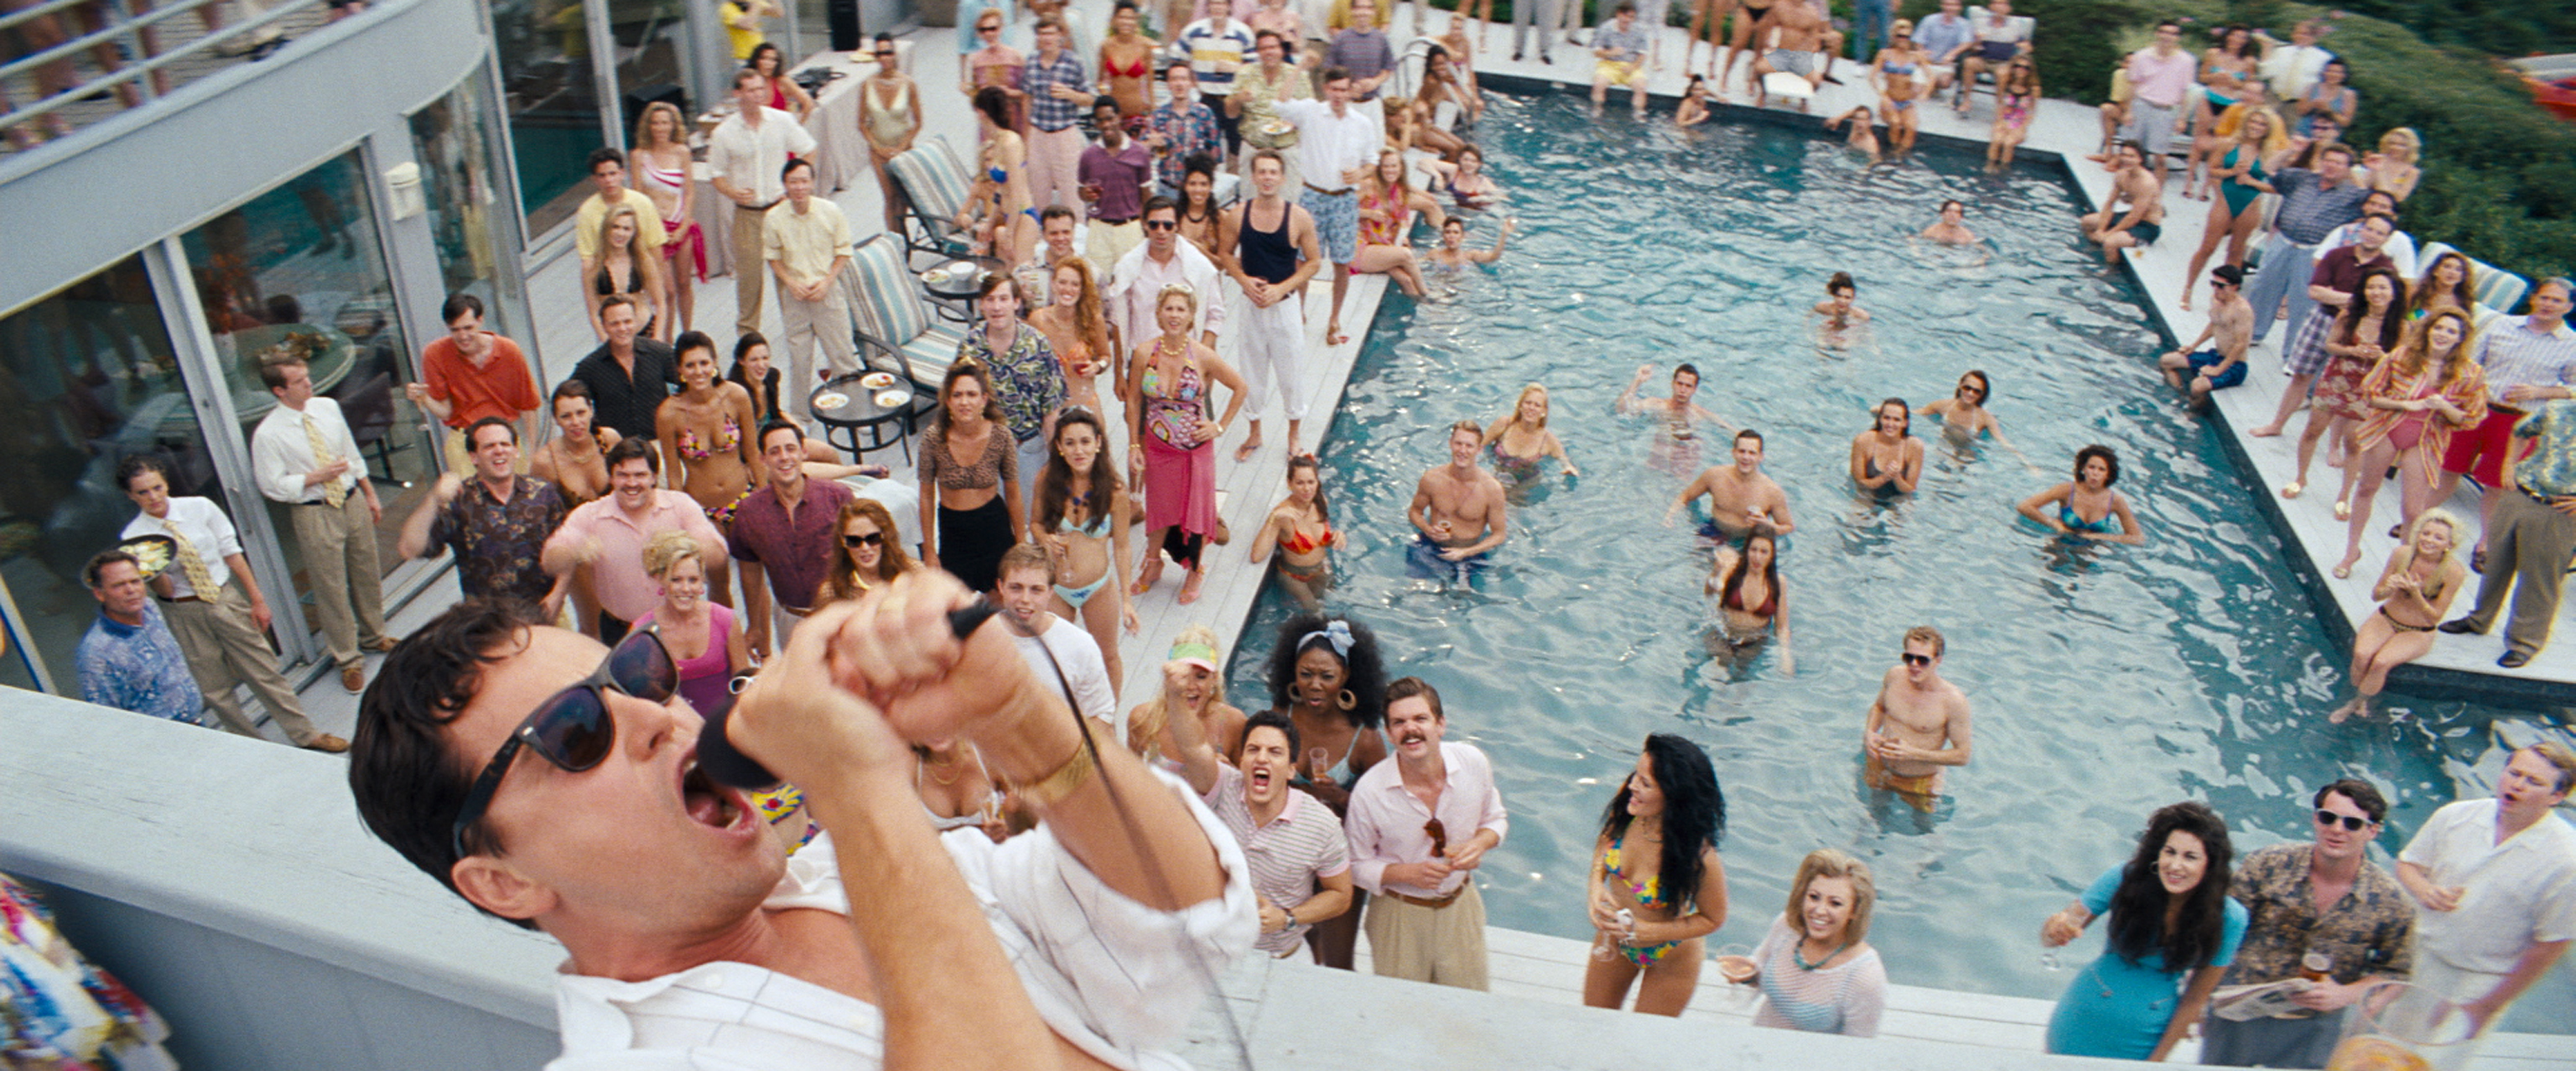 Leonardo dicaprio is jordan belfort in the wolf of wall street